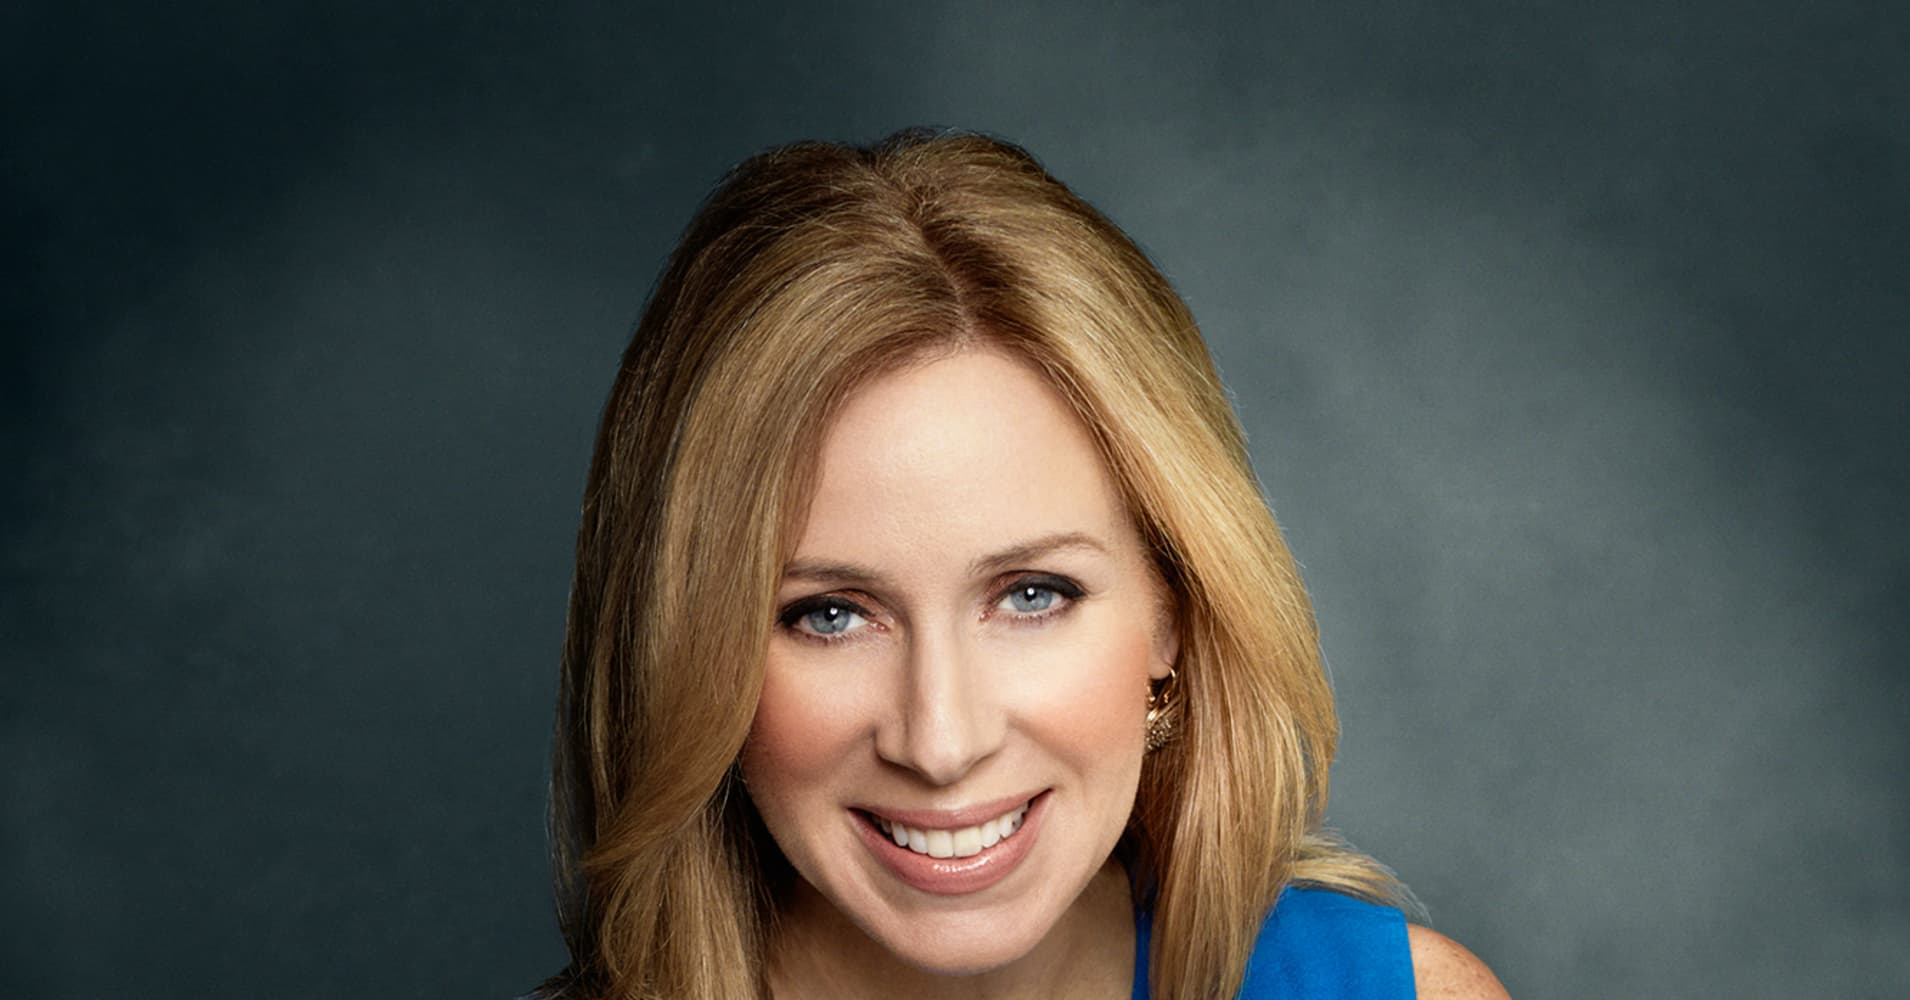 becky quick profile cnbc - Katie Warren Top Resume